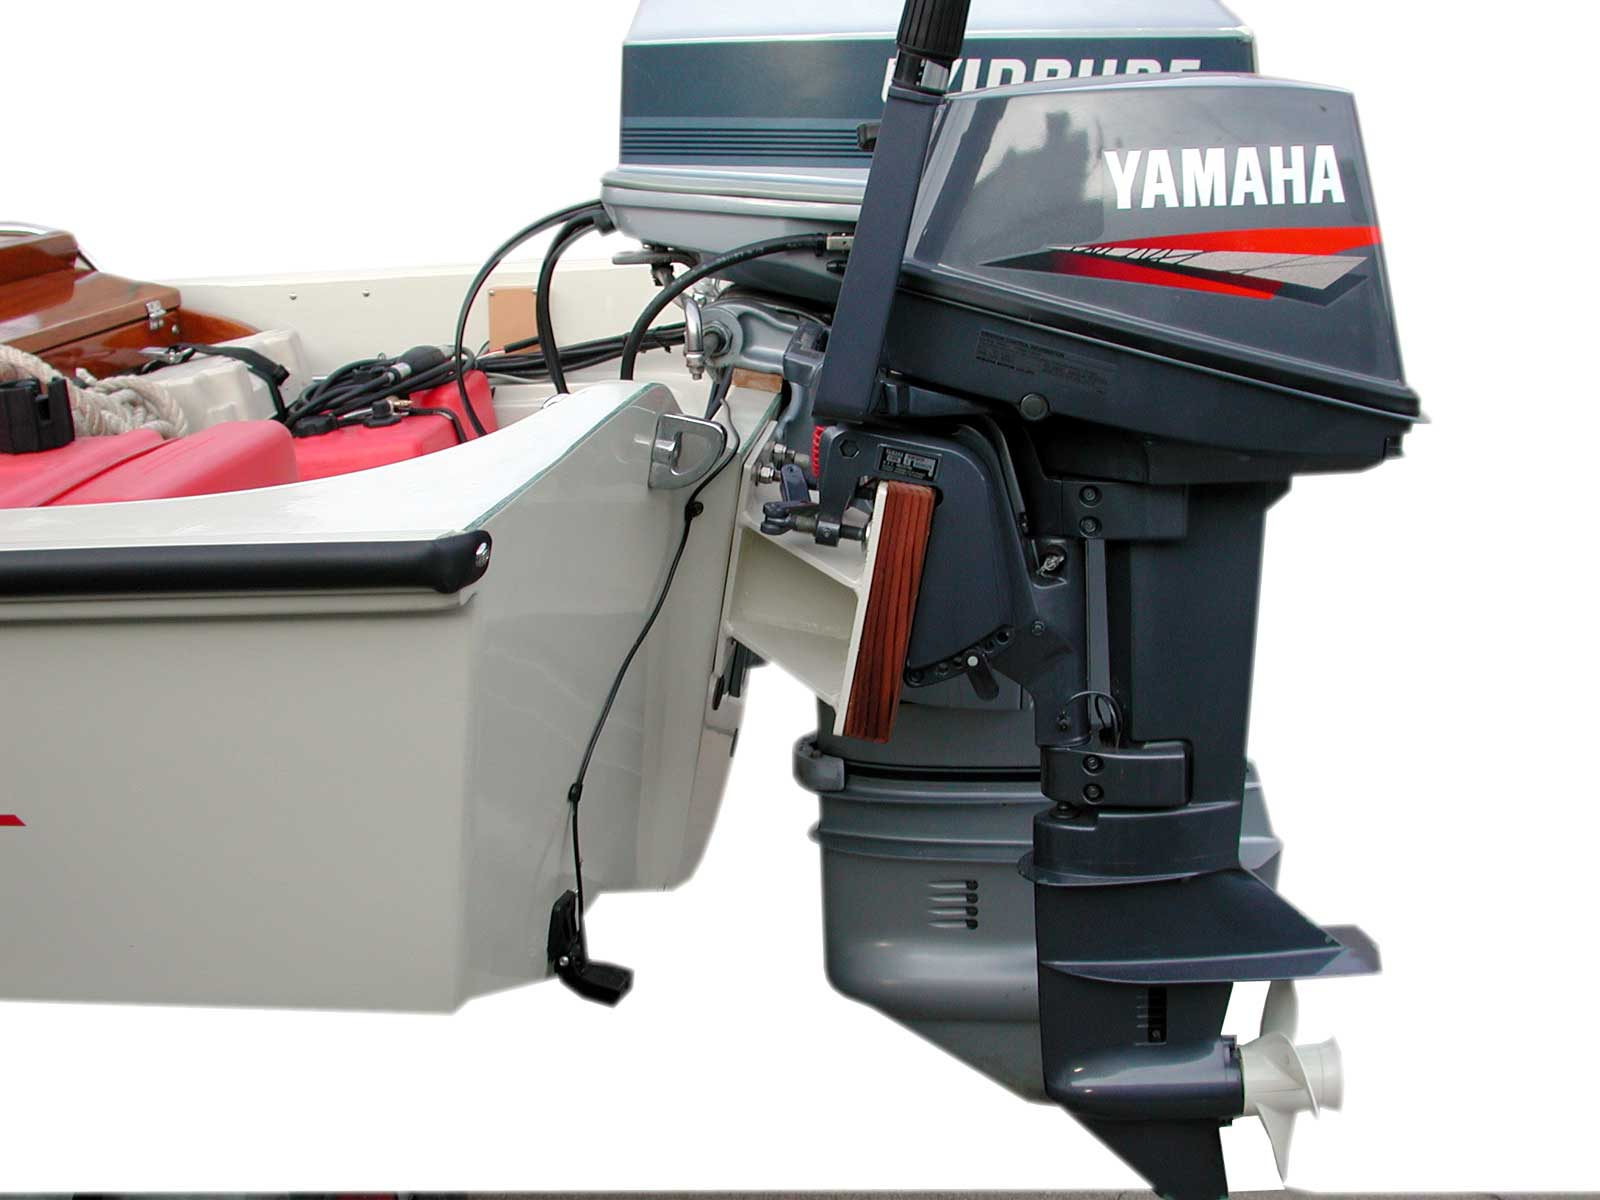 Yamaha Outboard 25HP Left Idle 1 Year, Won't Turn Over - FixYa